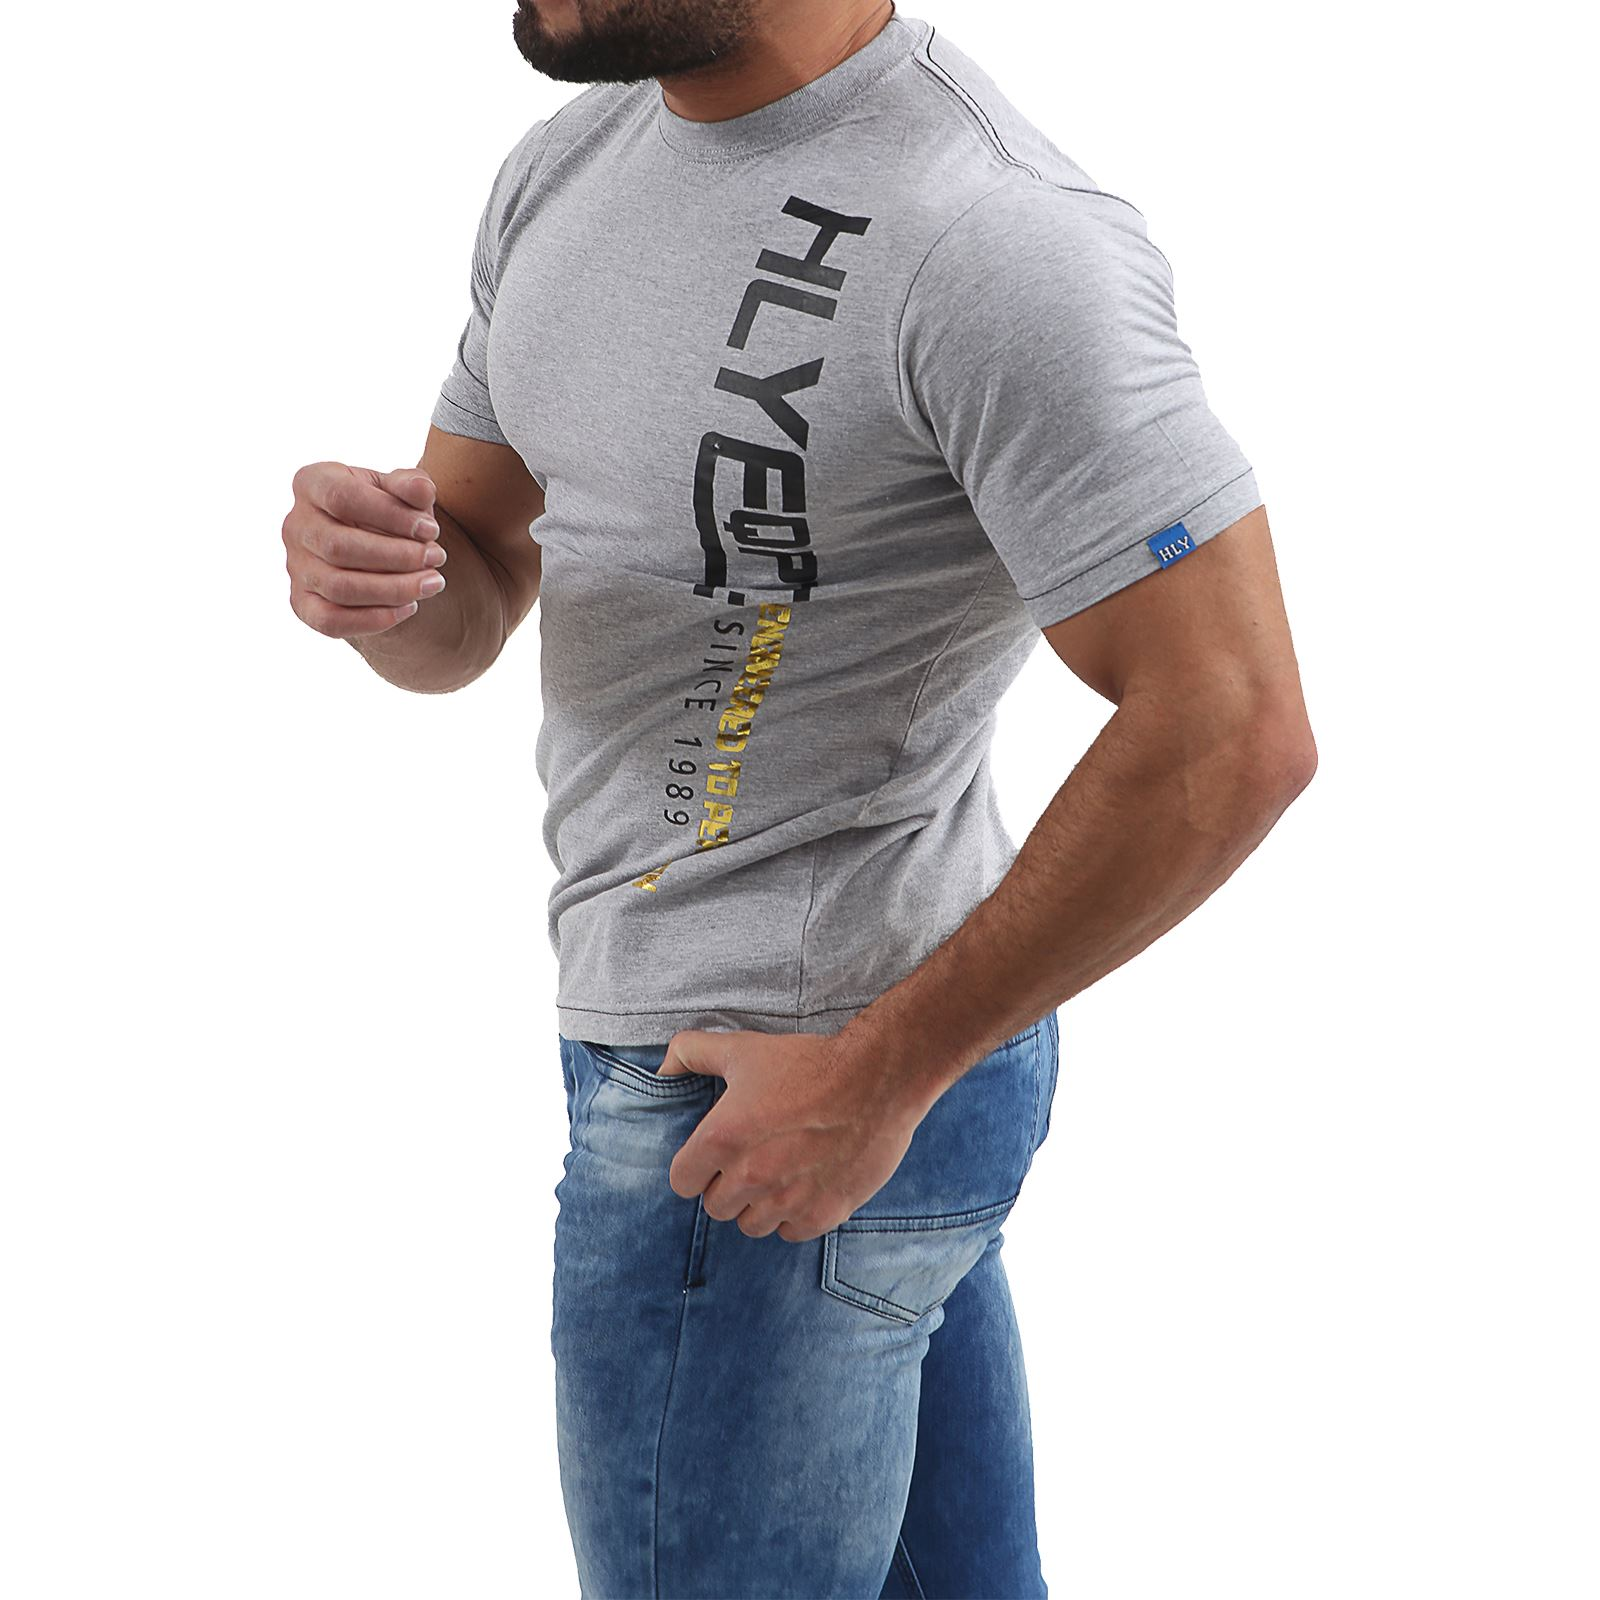 Mens-HLY-EQPT-Printed-T-Shirt-100-Cotton-Gym-Athletic-Training-Tee-Top-Summer thumbnail 9